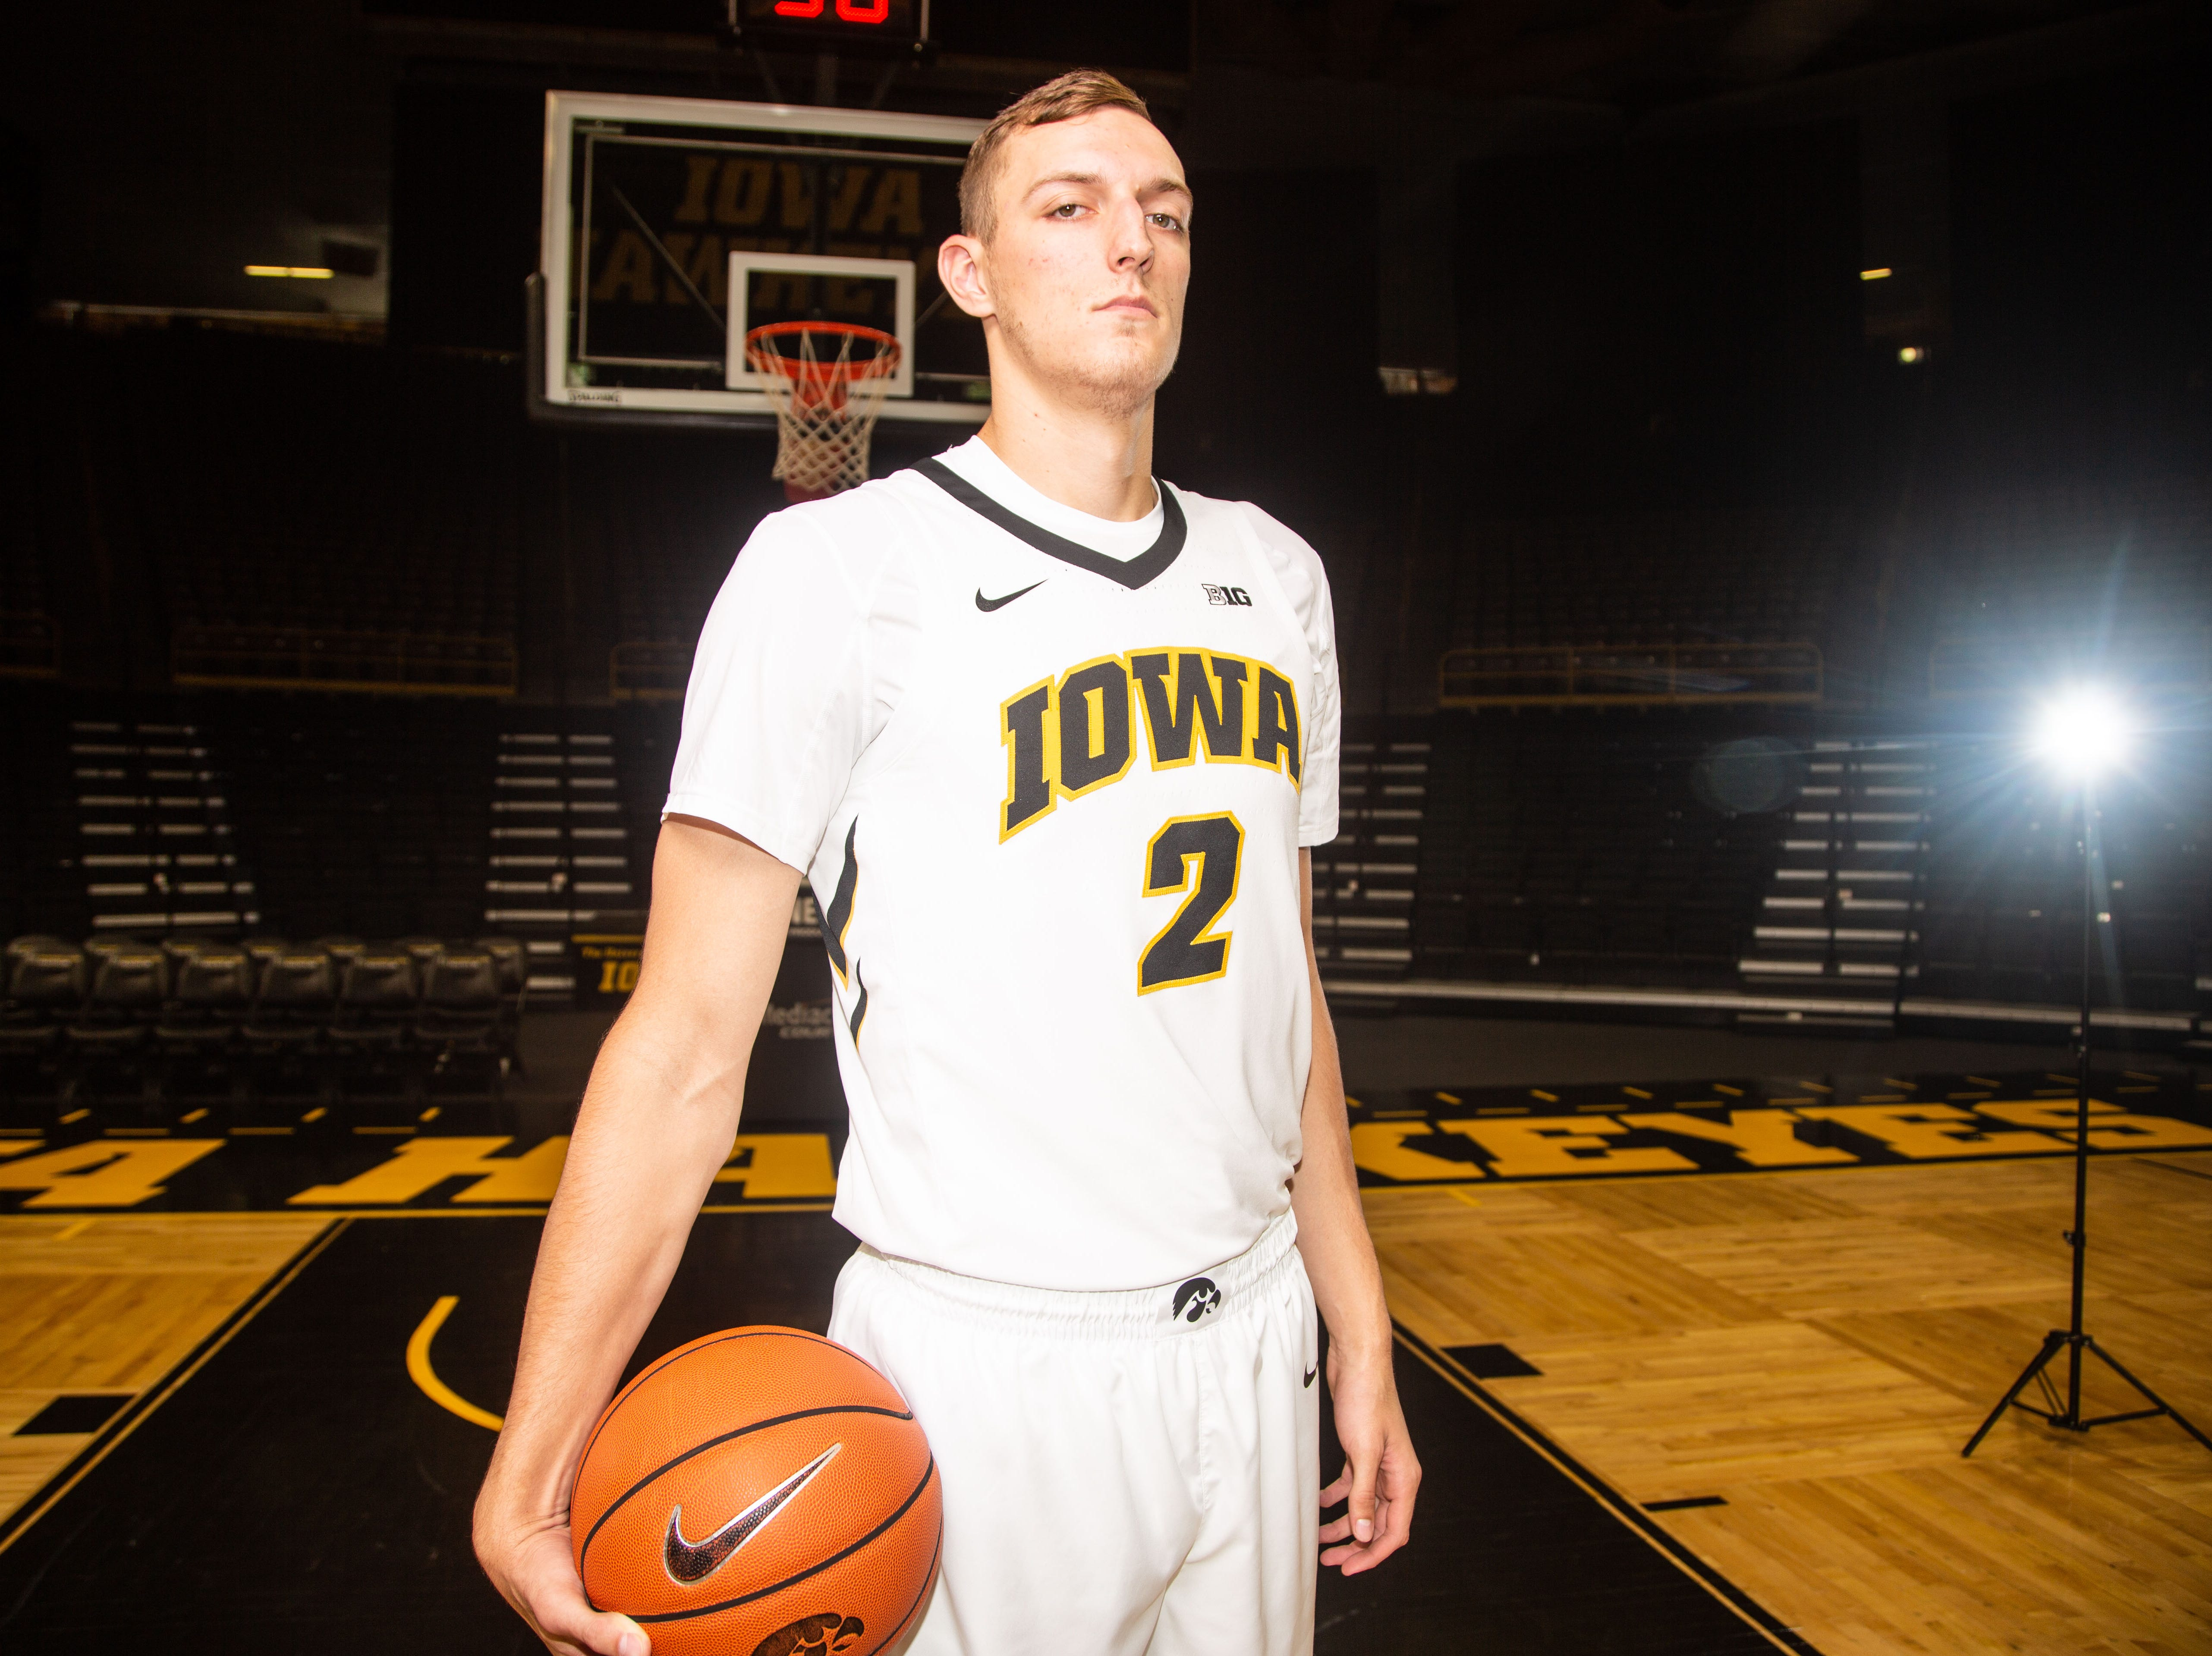 Iowa forward Jack Nunge poses for a photo during Hawkeye media day at Carver Hawkeye ArenaMonday, Oct. 8, 2018.